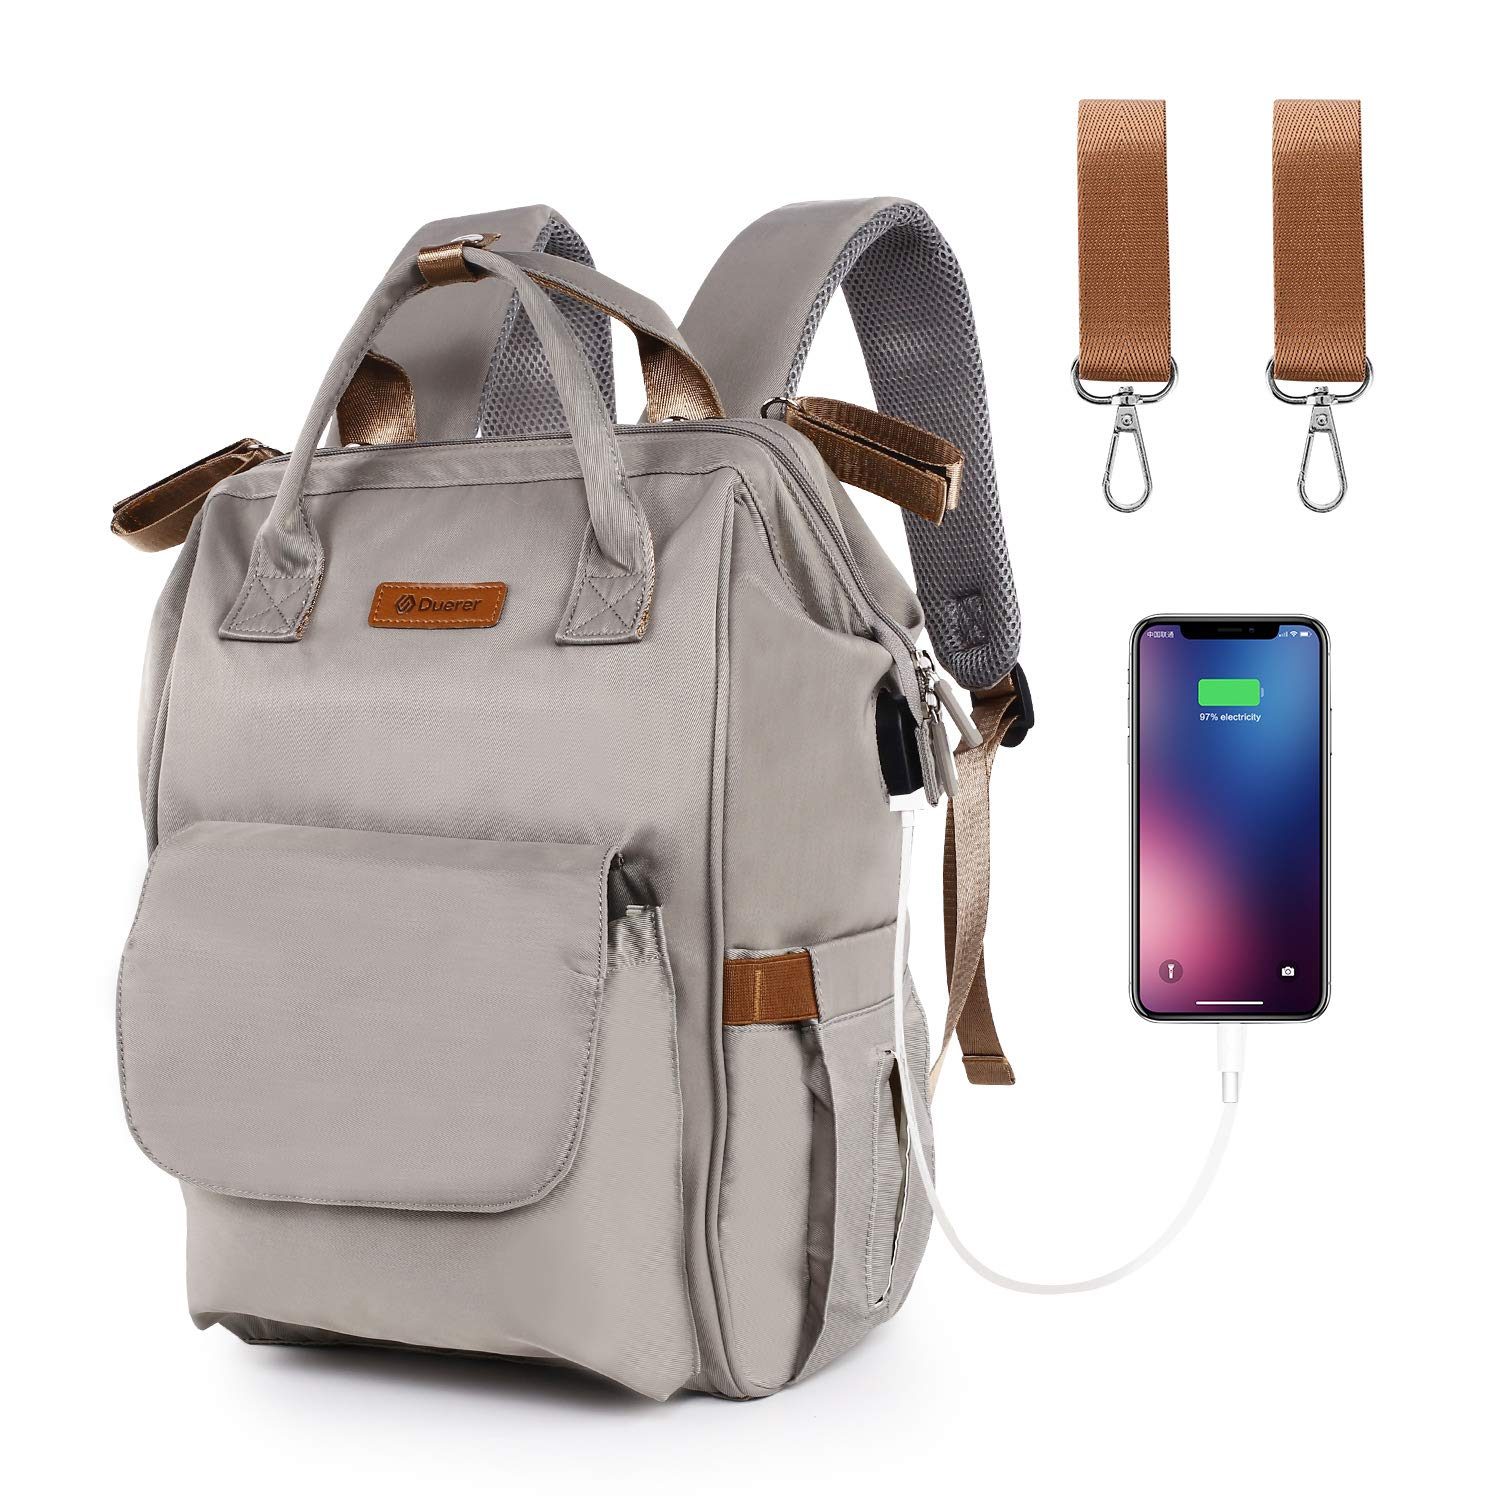 Diaper Bag Backpack, Duerer Multi-Function Waterproof Travel Baby Changing Bag with USB Charging Port Stroller Straps, Maternity Baby Nappy Bag, Large Capacity, Stylish Organizer for Baby Care - Gray